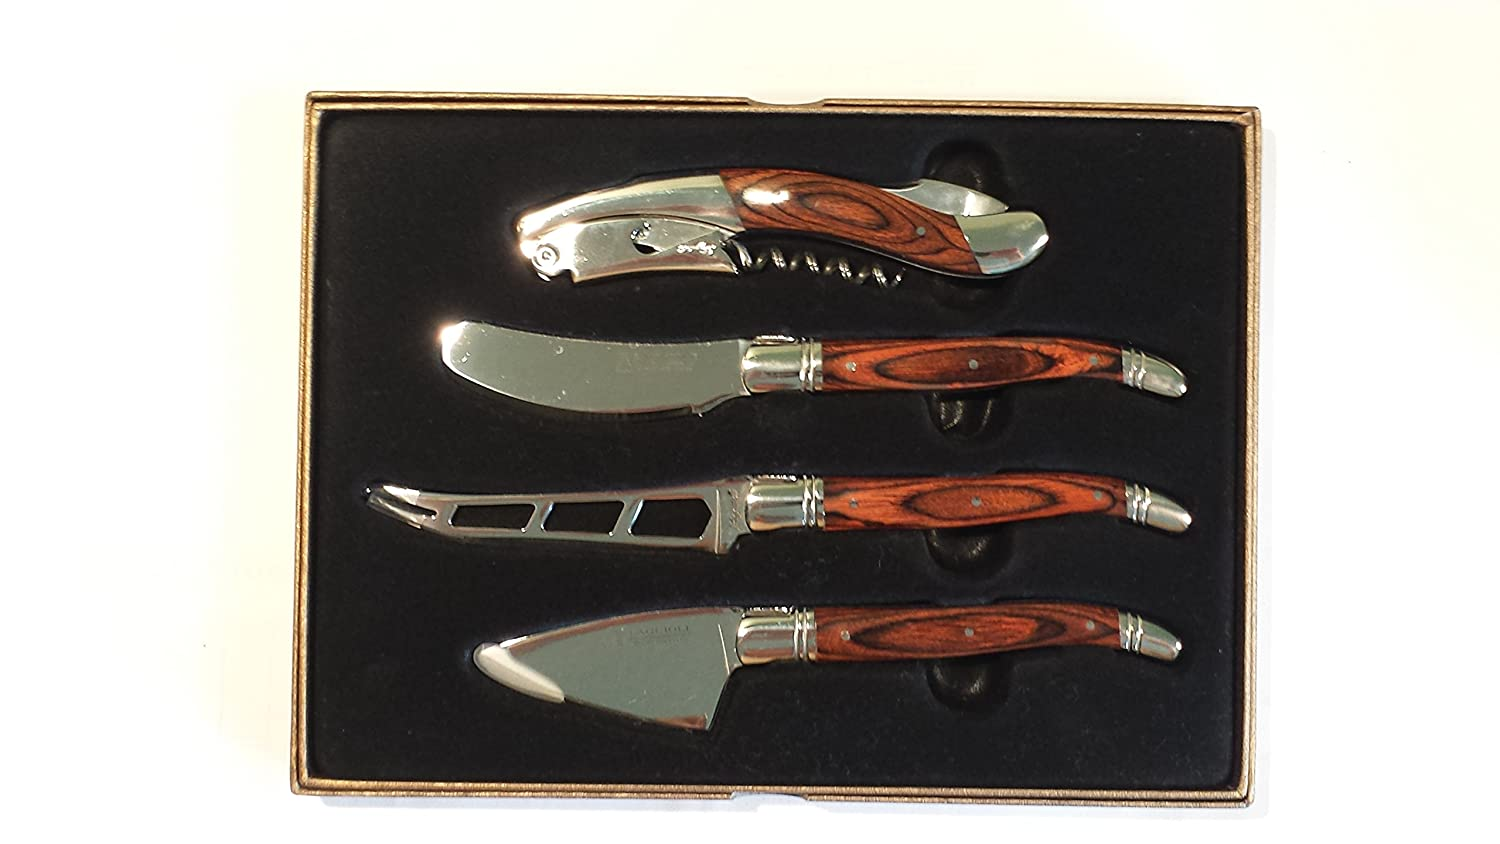 Laguiole 4-Piece Wine and Cheese Set 834505